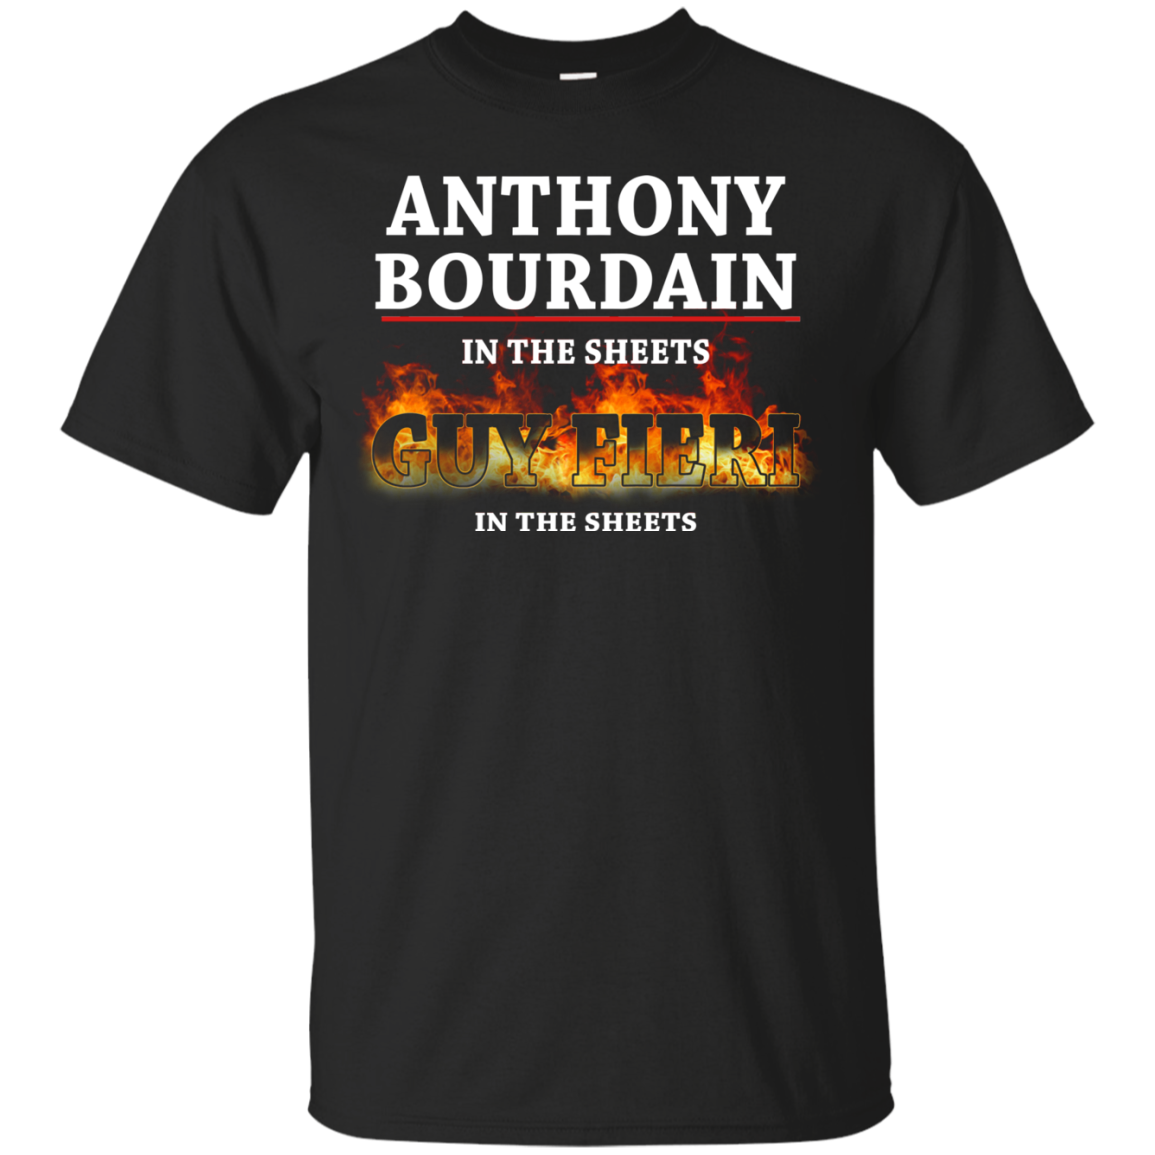 Anthony Bourdain T Shirts In The Sheets Guy Fieri In The Sheets